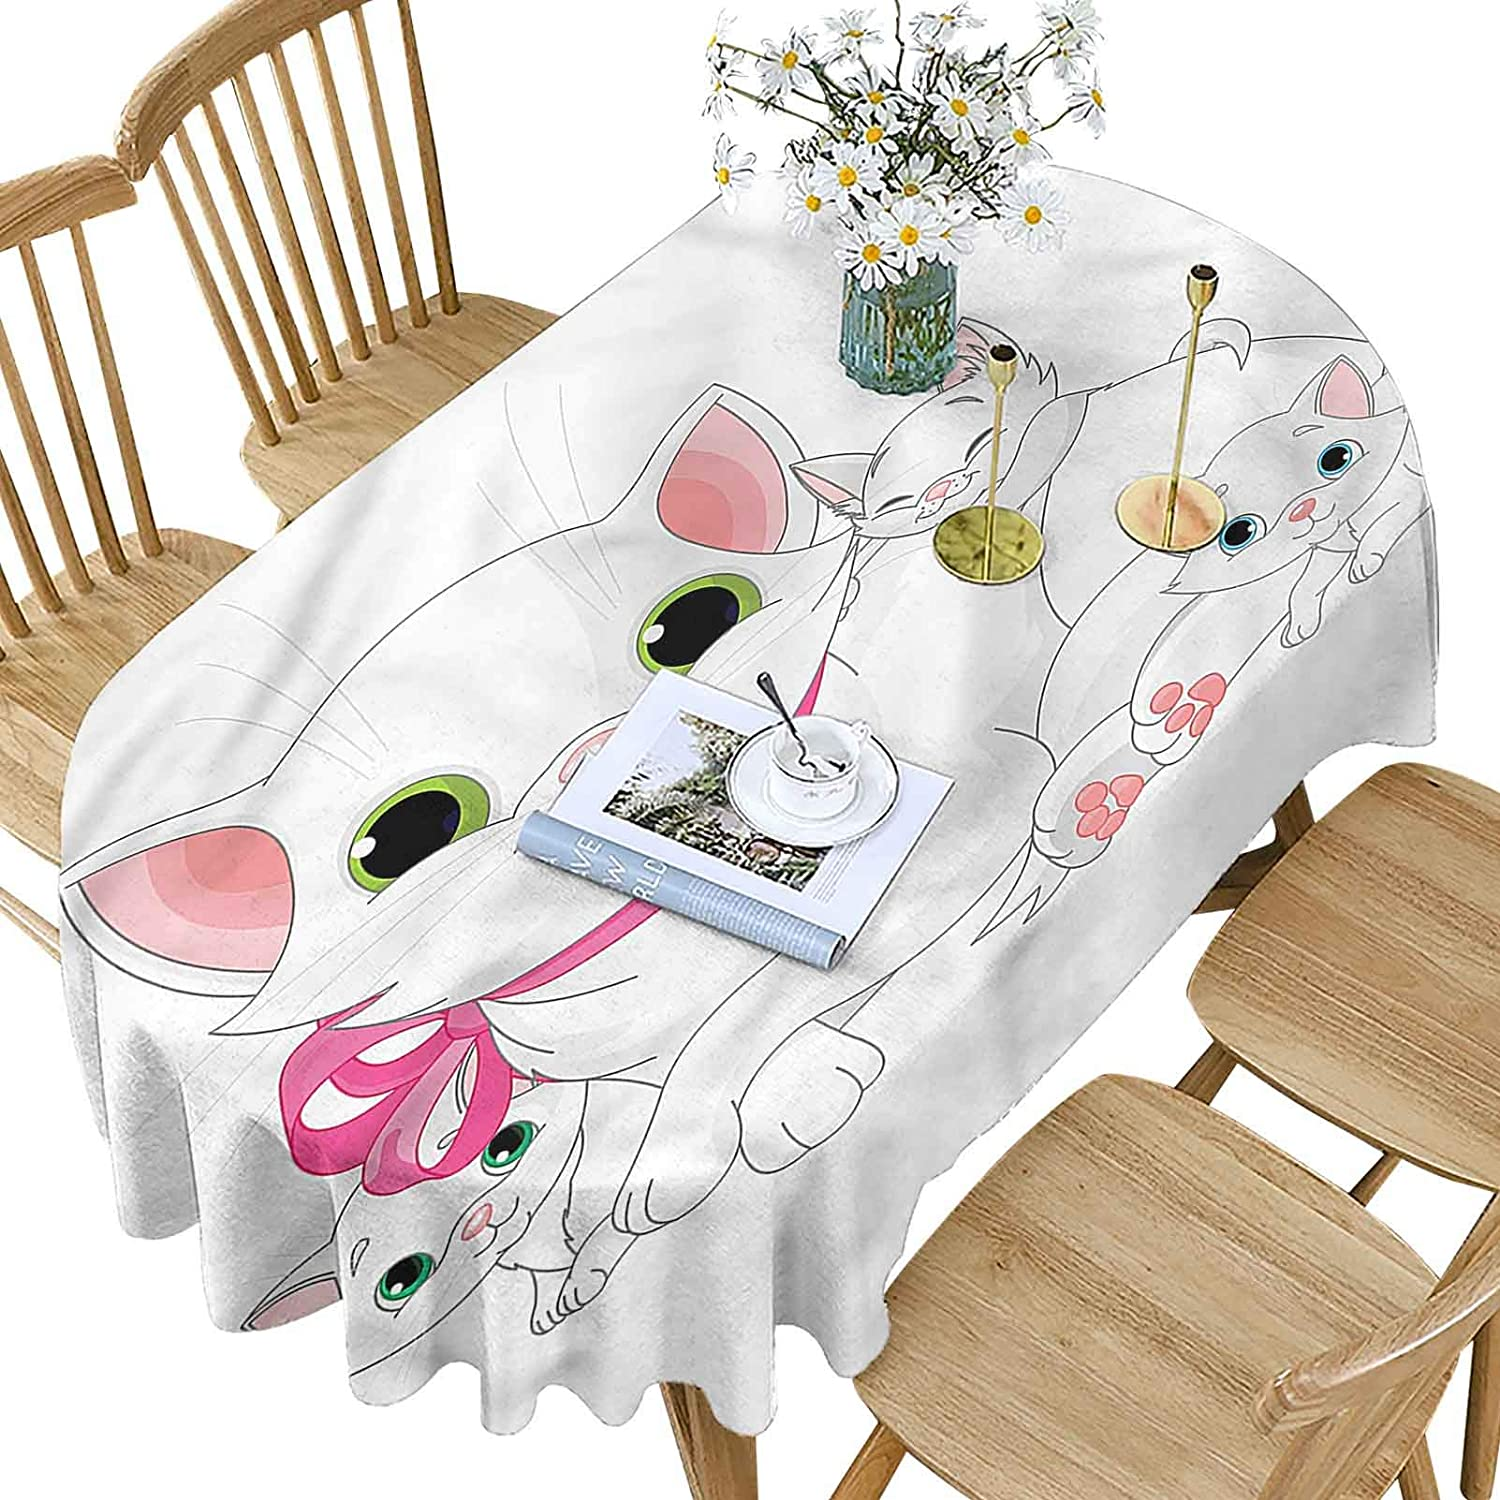 Cat Polyester Oval Tablecloth,Happy Family Smiling Together Pattern Printed Washable Table Cloth Cover for Oval Table,60x84 Inch Oval,for Dining, Kitchen, Wedding, Parties